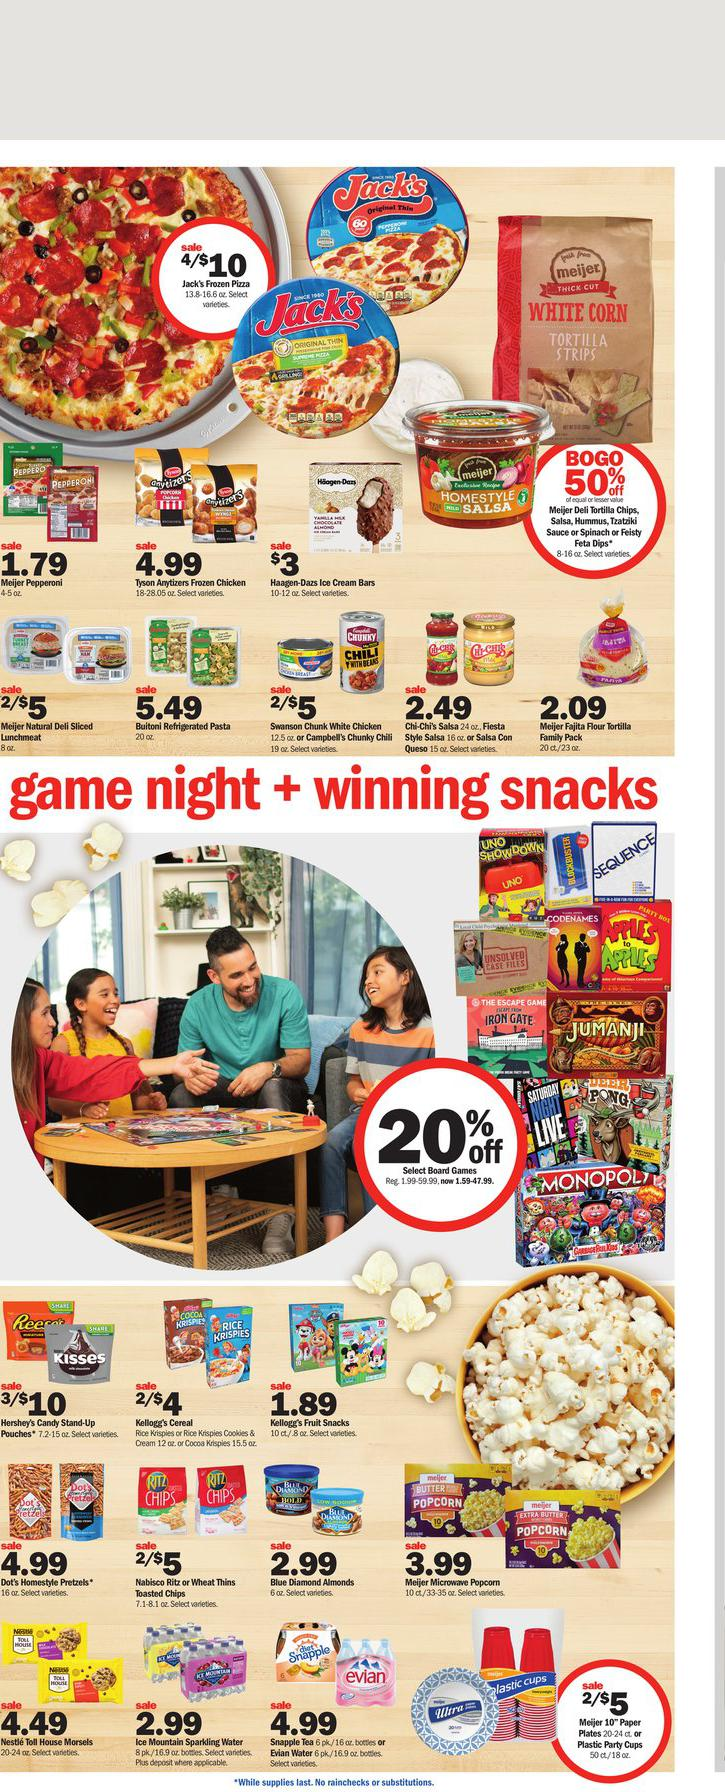 21.02.2021 Meijer ad 9. page